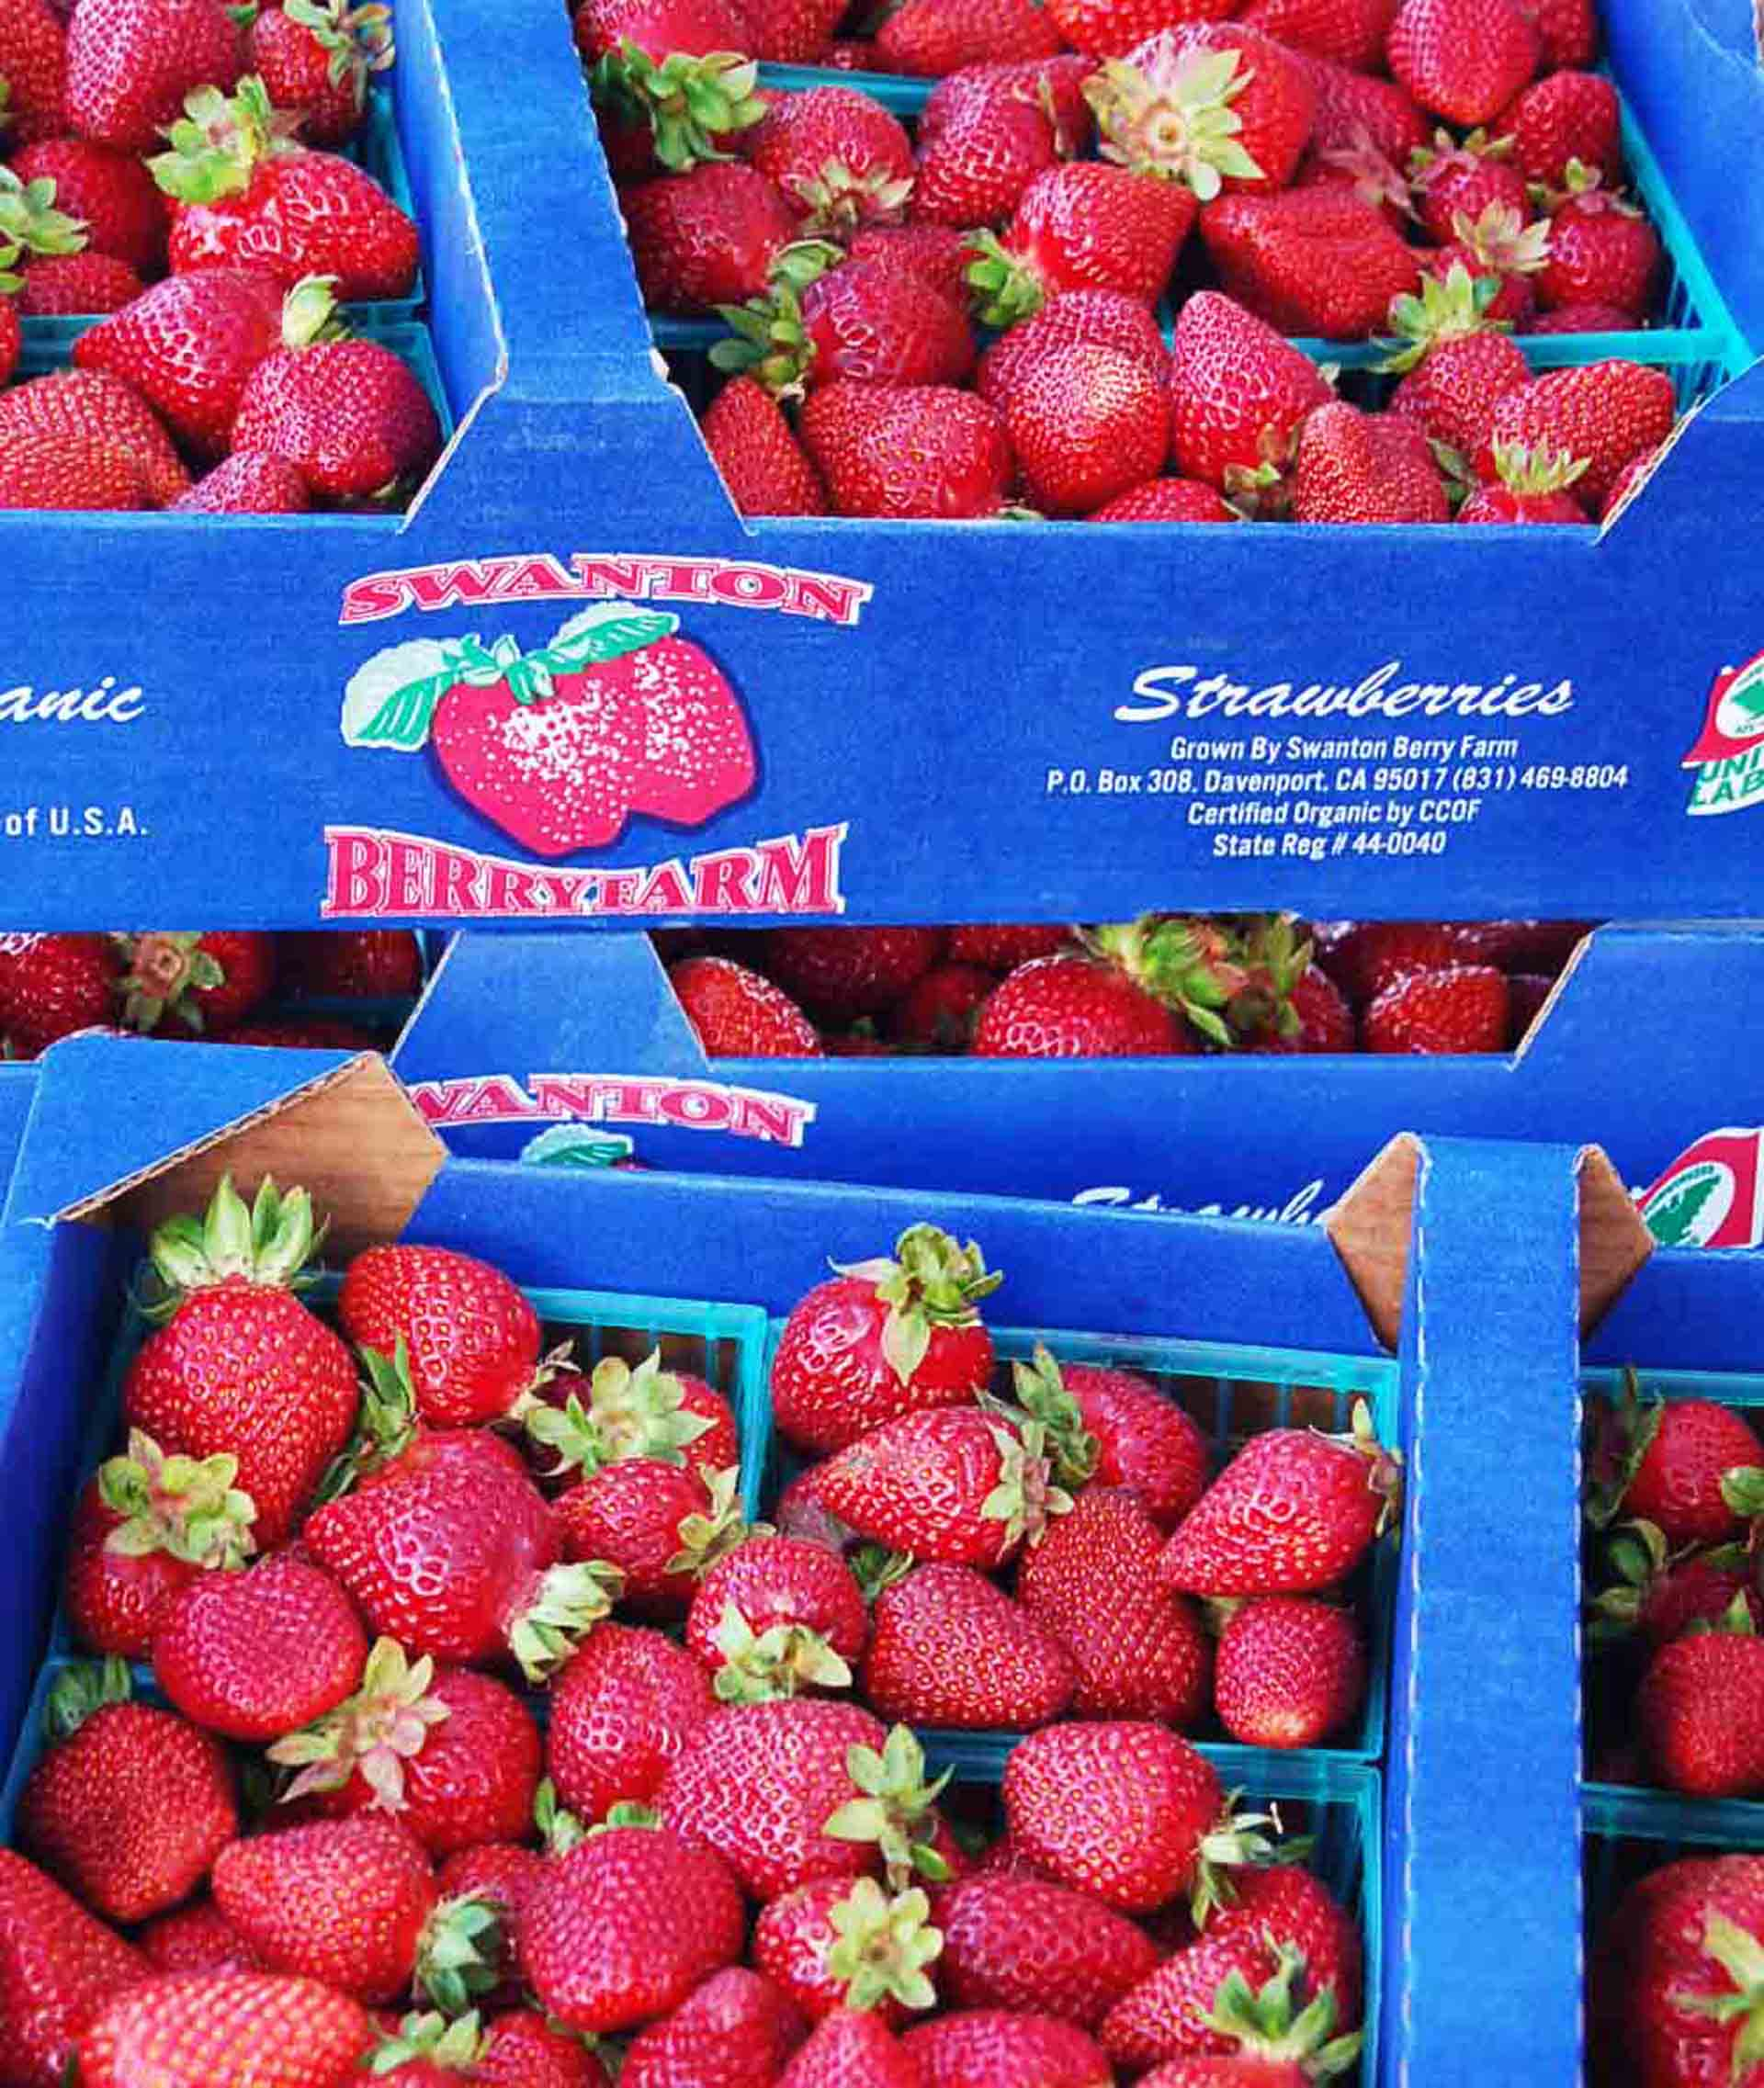 The Chandler berries from Swanton are found at Bay Area farmers markets as well as markets such as Bi-Rite, Monterey Market and Rainbow Grocery, depending on availability.